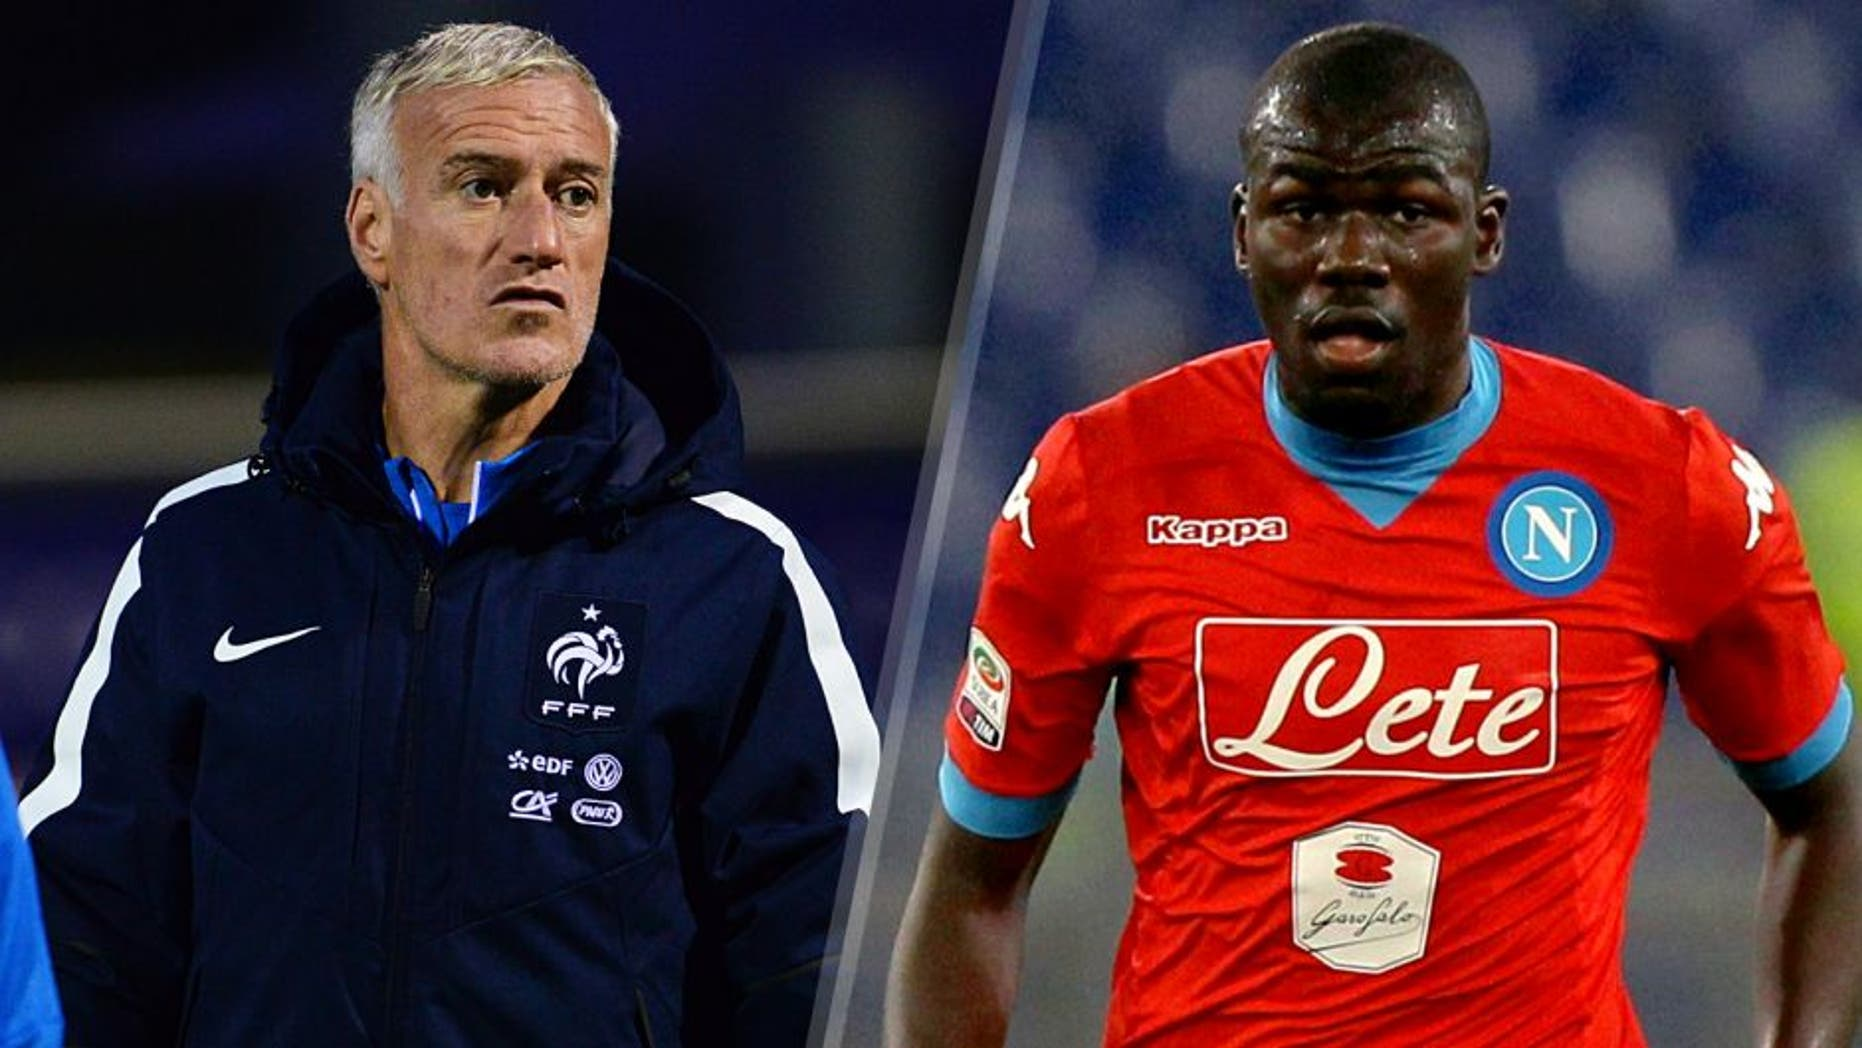 CLAIREFONTAINE, FRANCE - NOVEMBER 10: France head coach Didier Deschamps during the second training session four days ahead of the friendly match against Germany on November 10, 2015 in Clairefontaine, France. (Photo by Frederic Stevens/Getty Images) ROME, ITALY - FEBRUARY 03: Kalidou Koulibaly of SSC Napoli in action during the Serie A match between SS Lazio and SSC Napoli at Stadio Olimpico on February 3, 2016 in Rome, Italy. (Photo by Paolo Bruno/Getty Images)